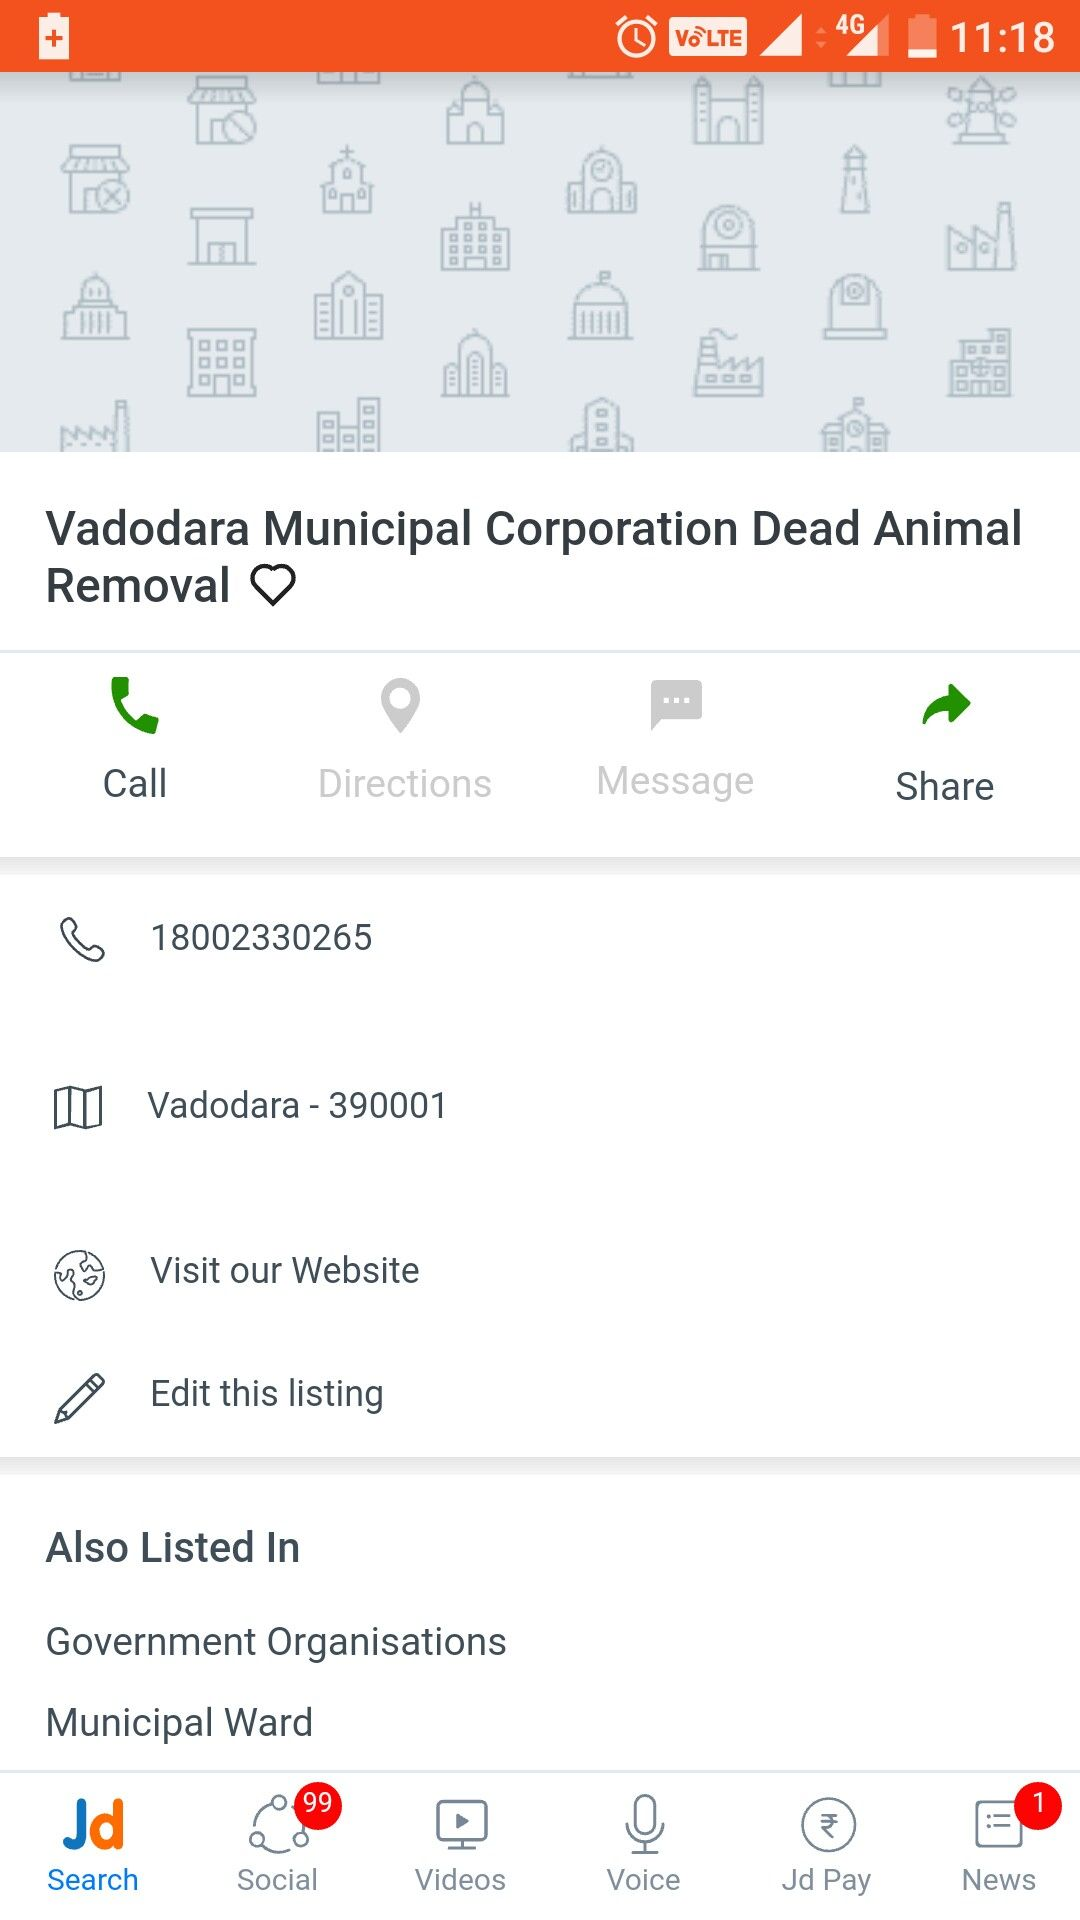 Roadkill How to remove, Messages, Municipal corporation